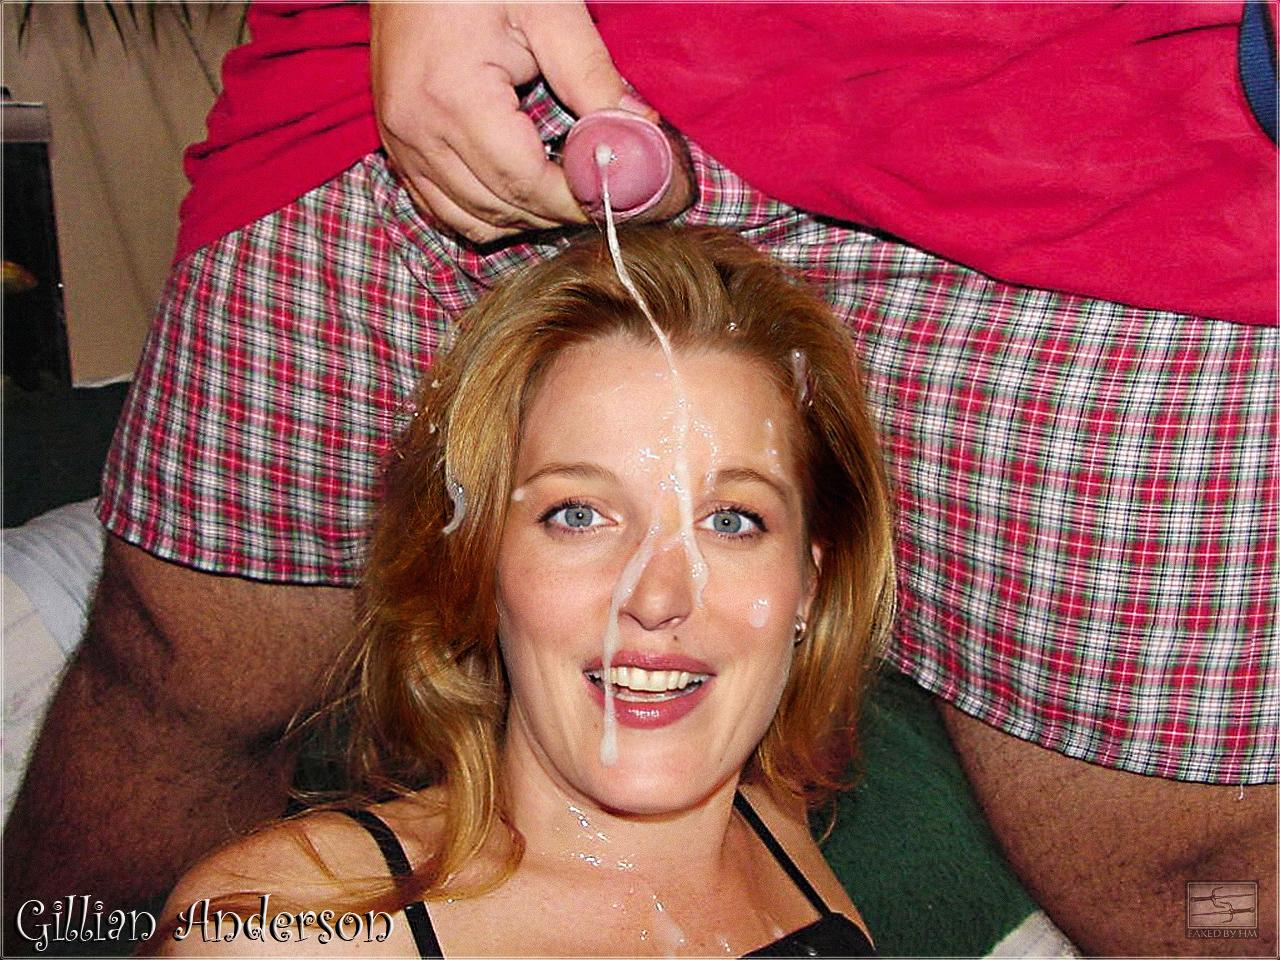 Gillian anderson porn torrent